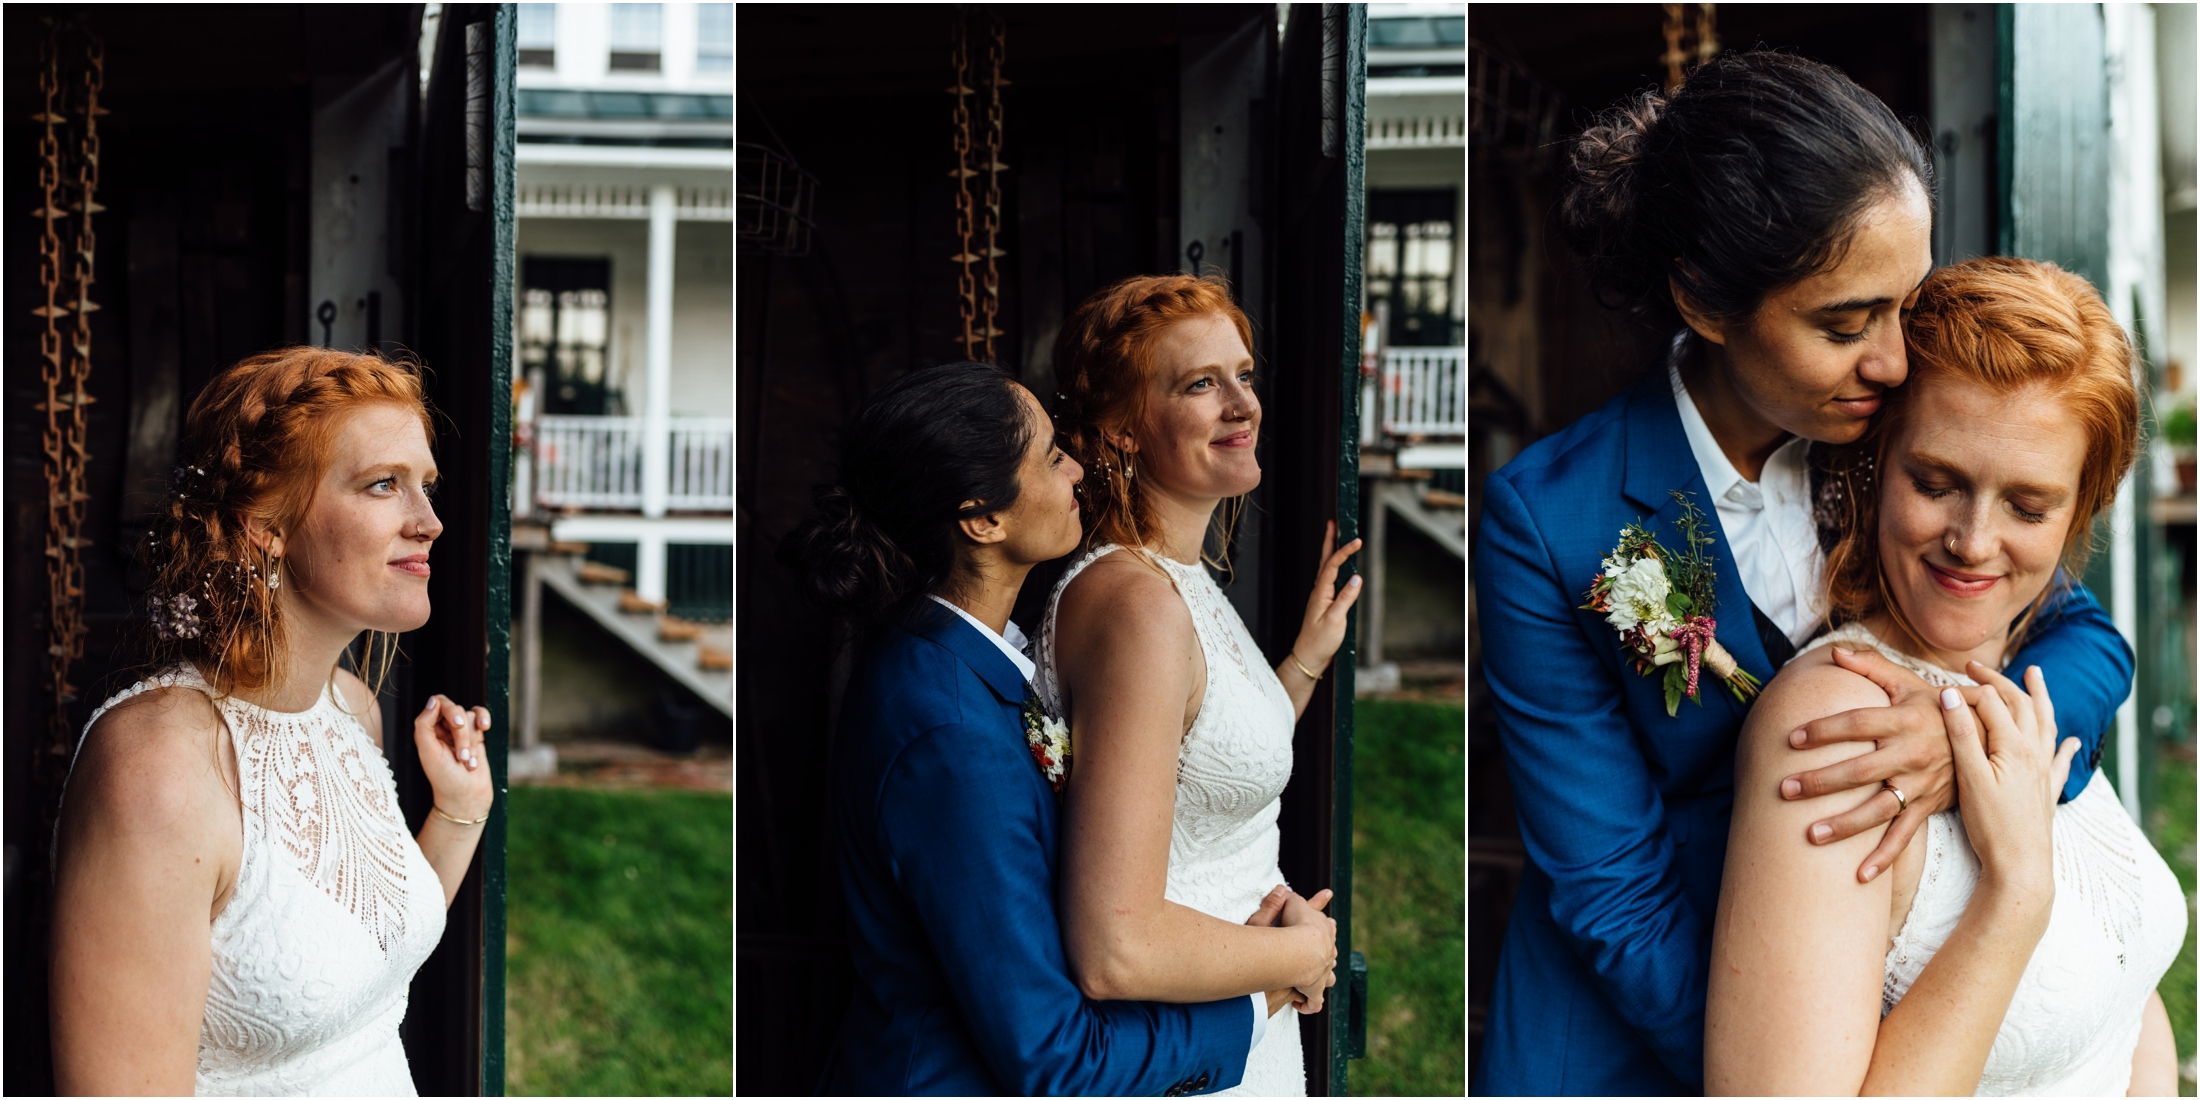 Kate_and_Michele_New_Hampshire_wedding_the_photo_farm_0630.jpg